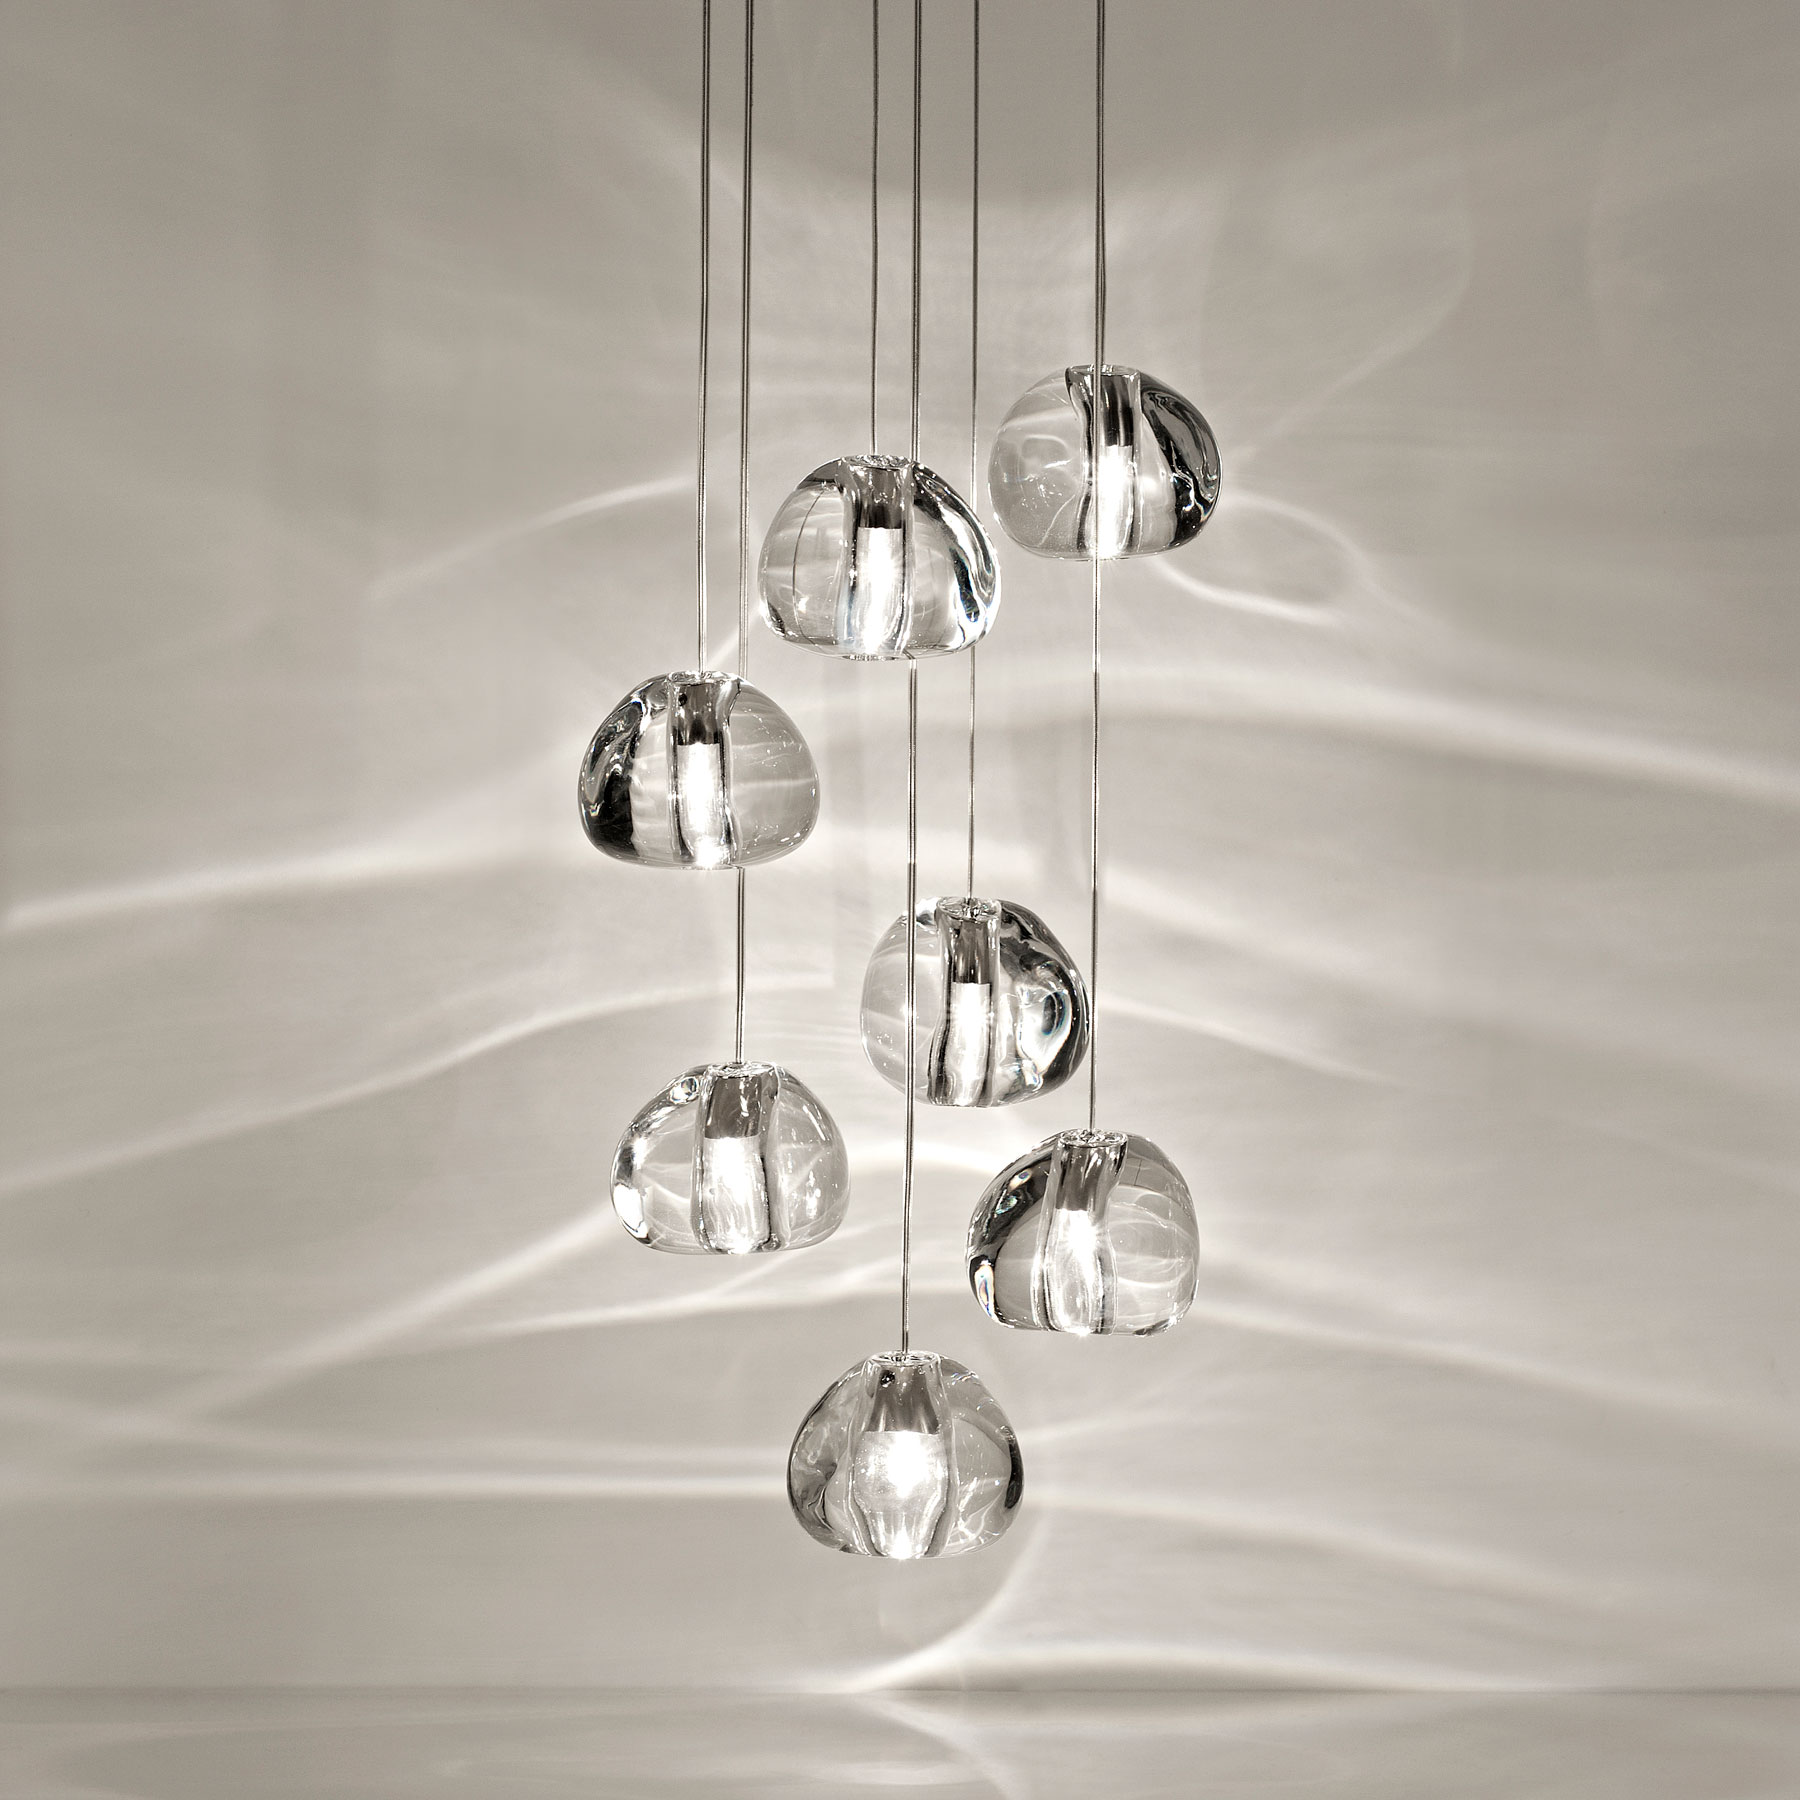 laura light lights large view ceiling ashley pendant clayton chandeliers resp metal uk invt utility